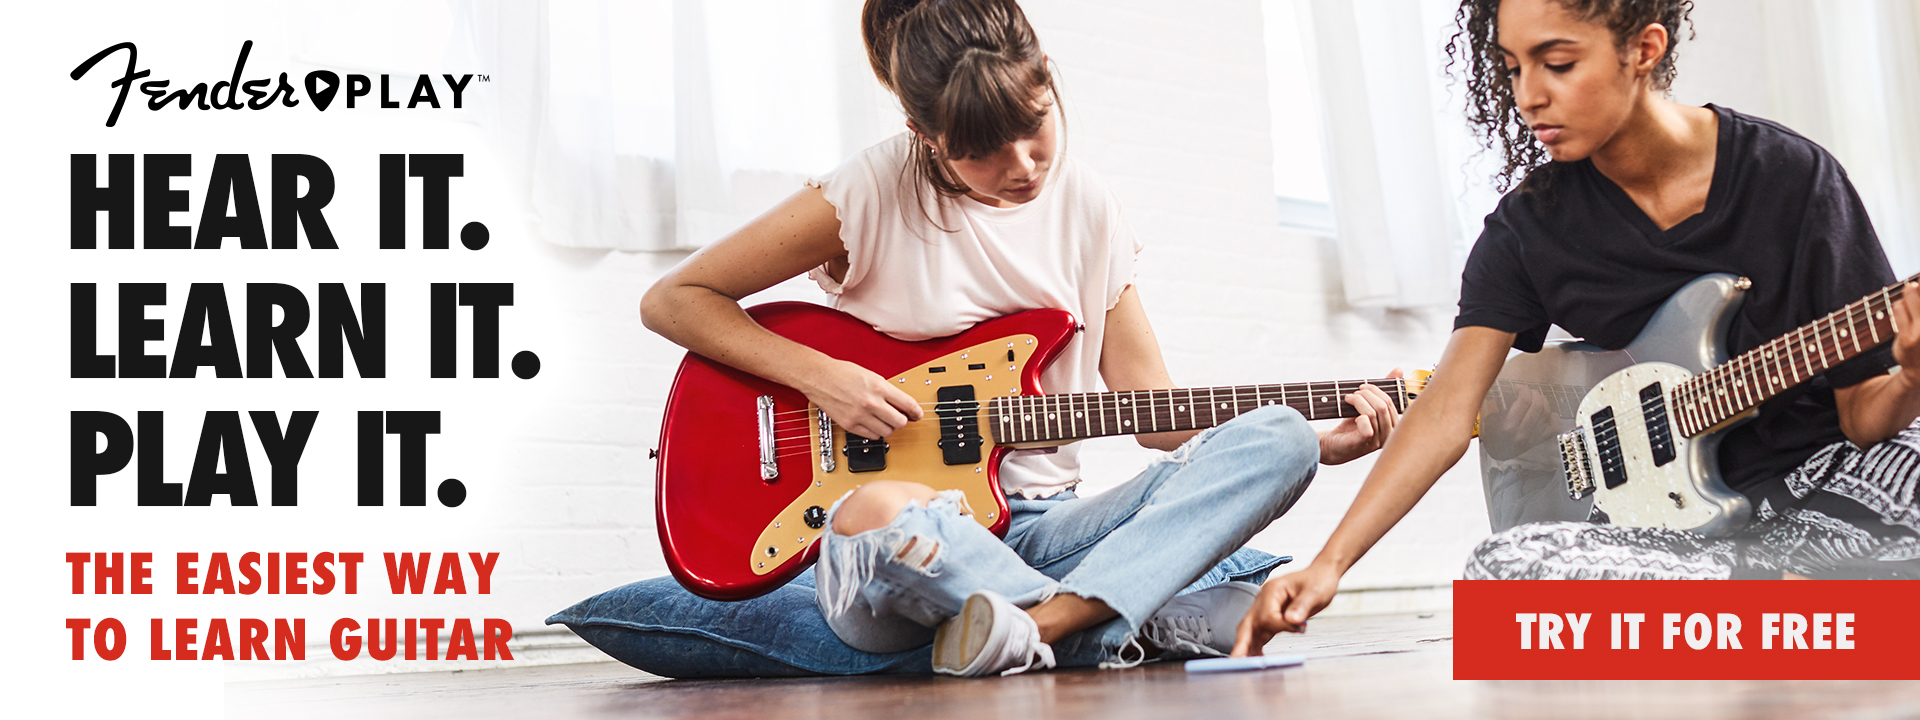 Online Guitar Lessons Reviews – The Top 10 Guitar Learning Programs 2